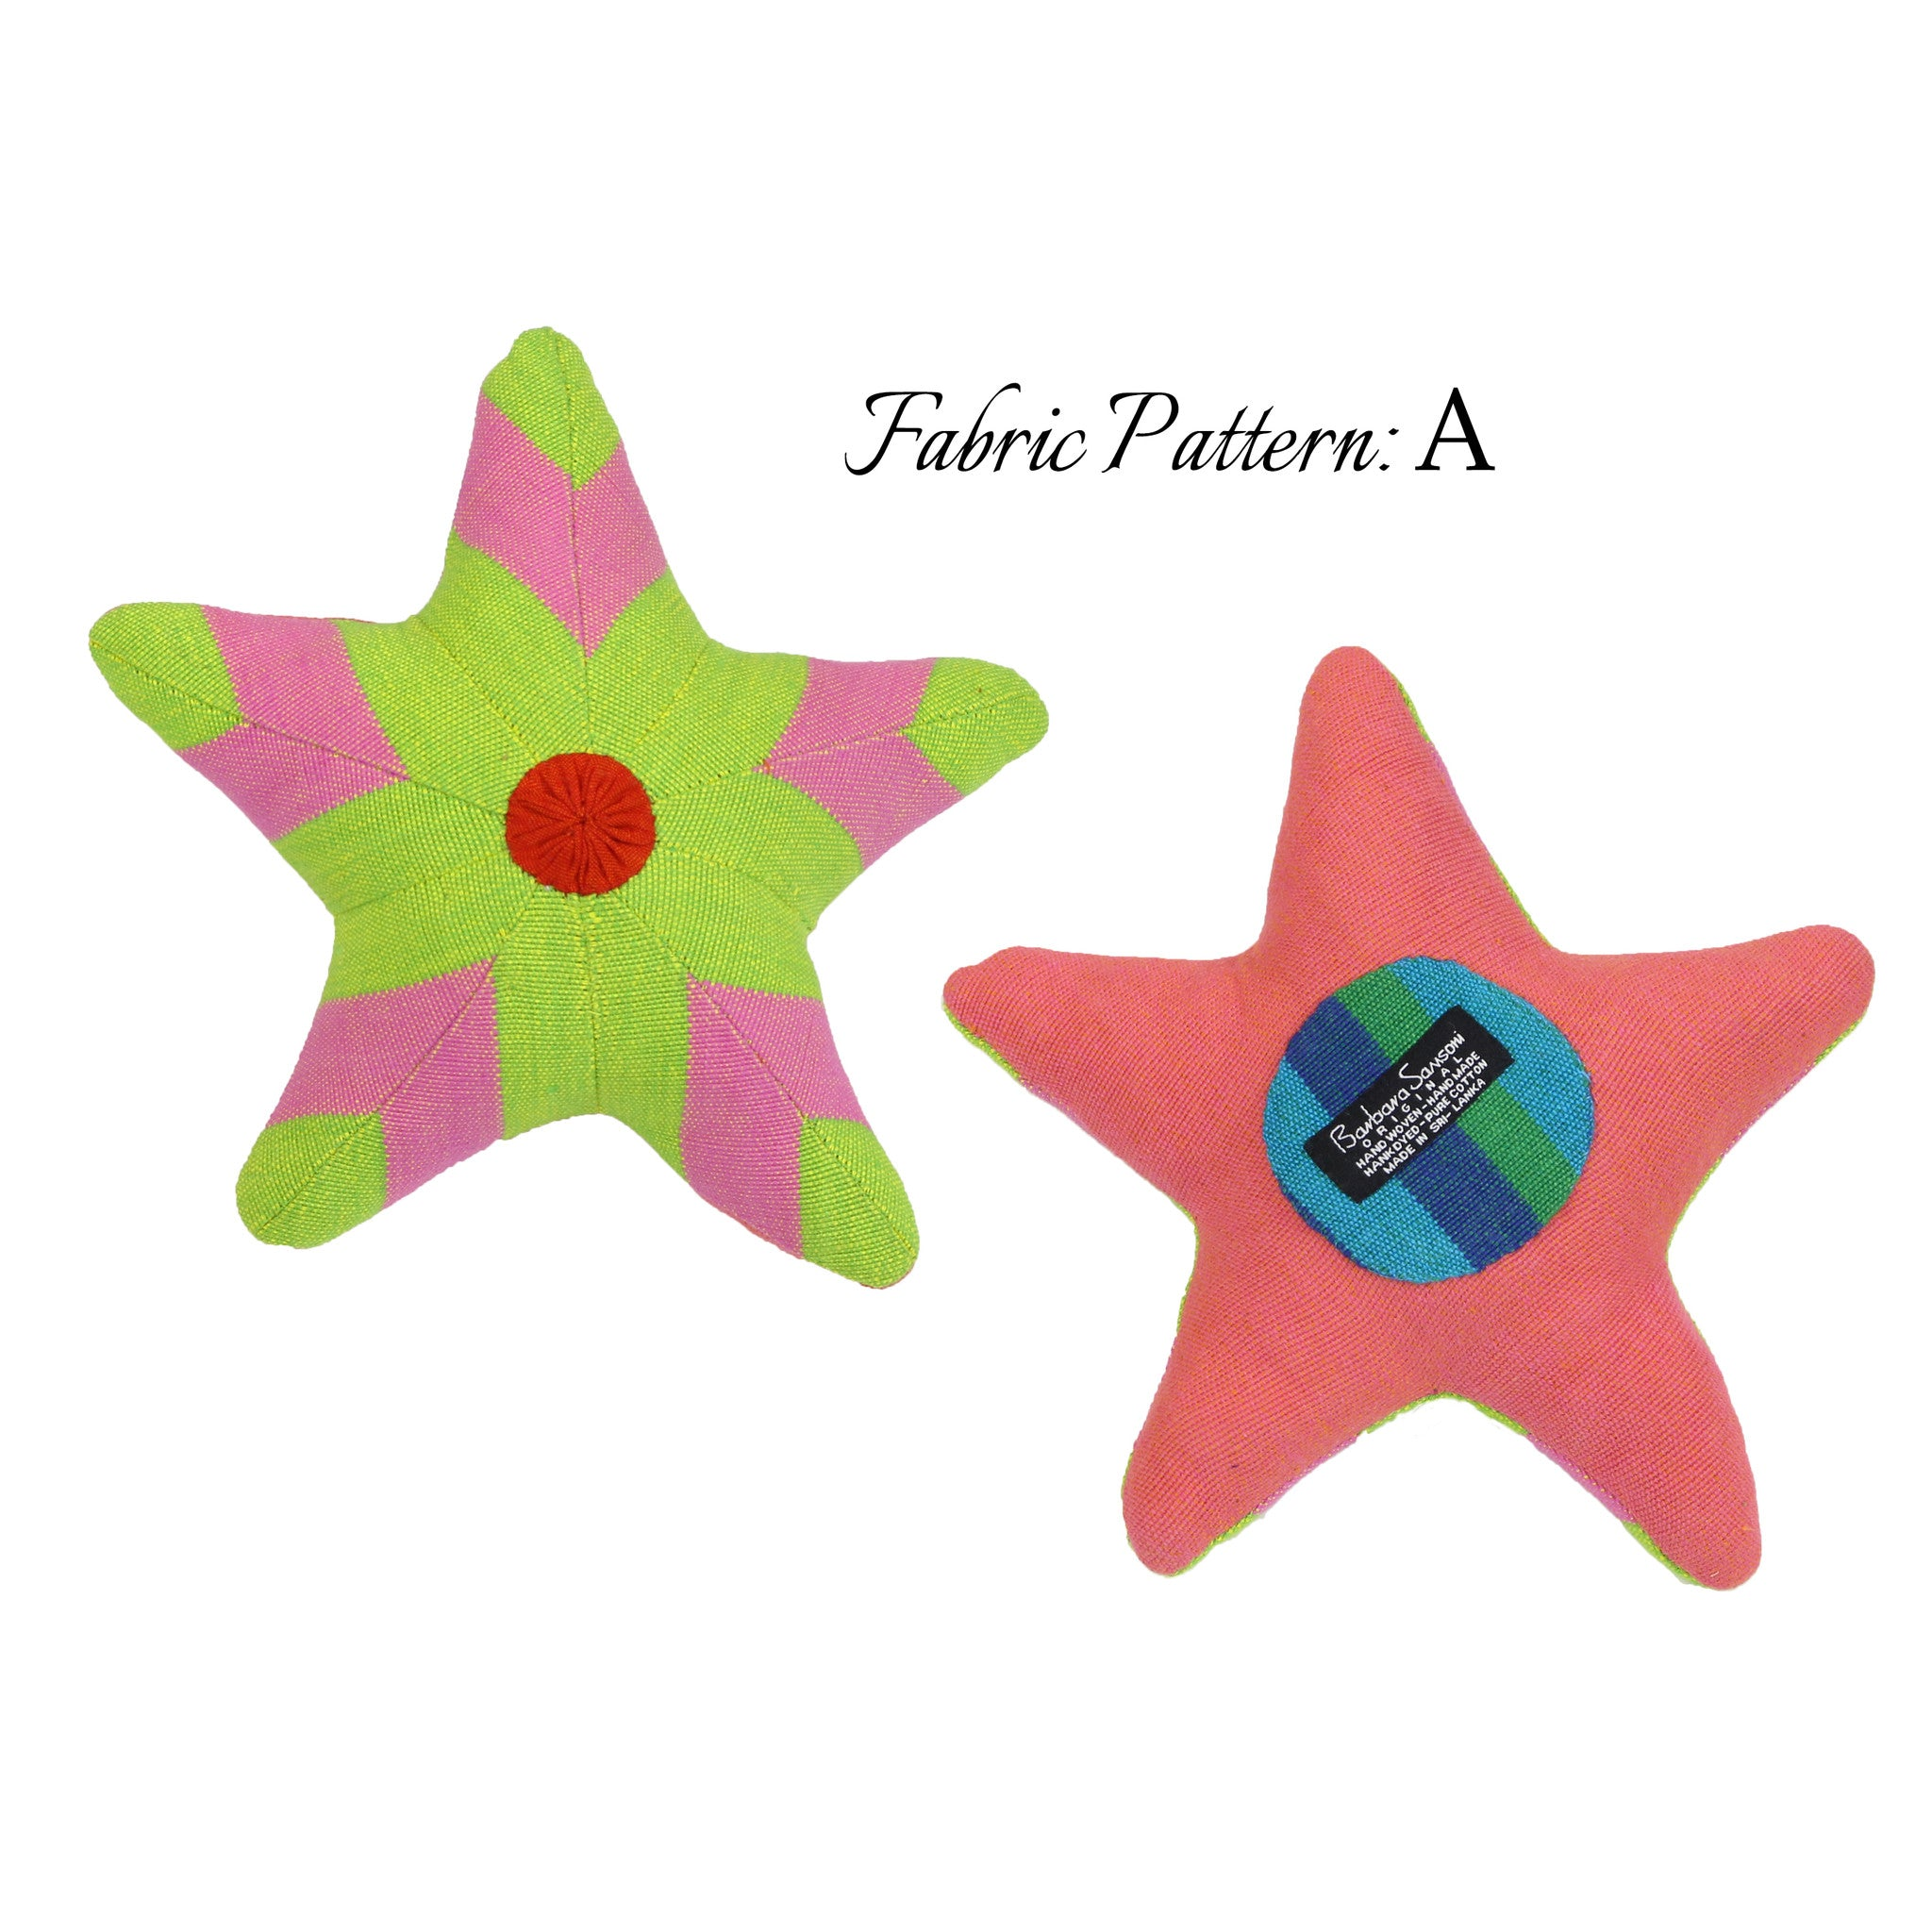 Stacey, the Starfish – pattern A (front & back view)